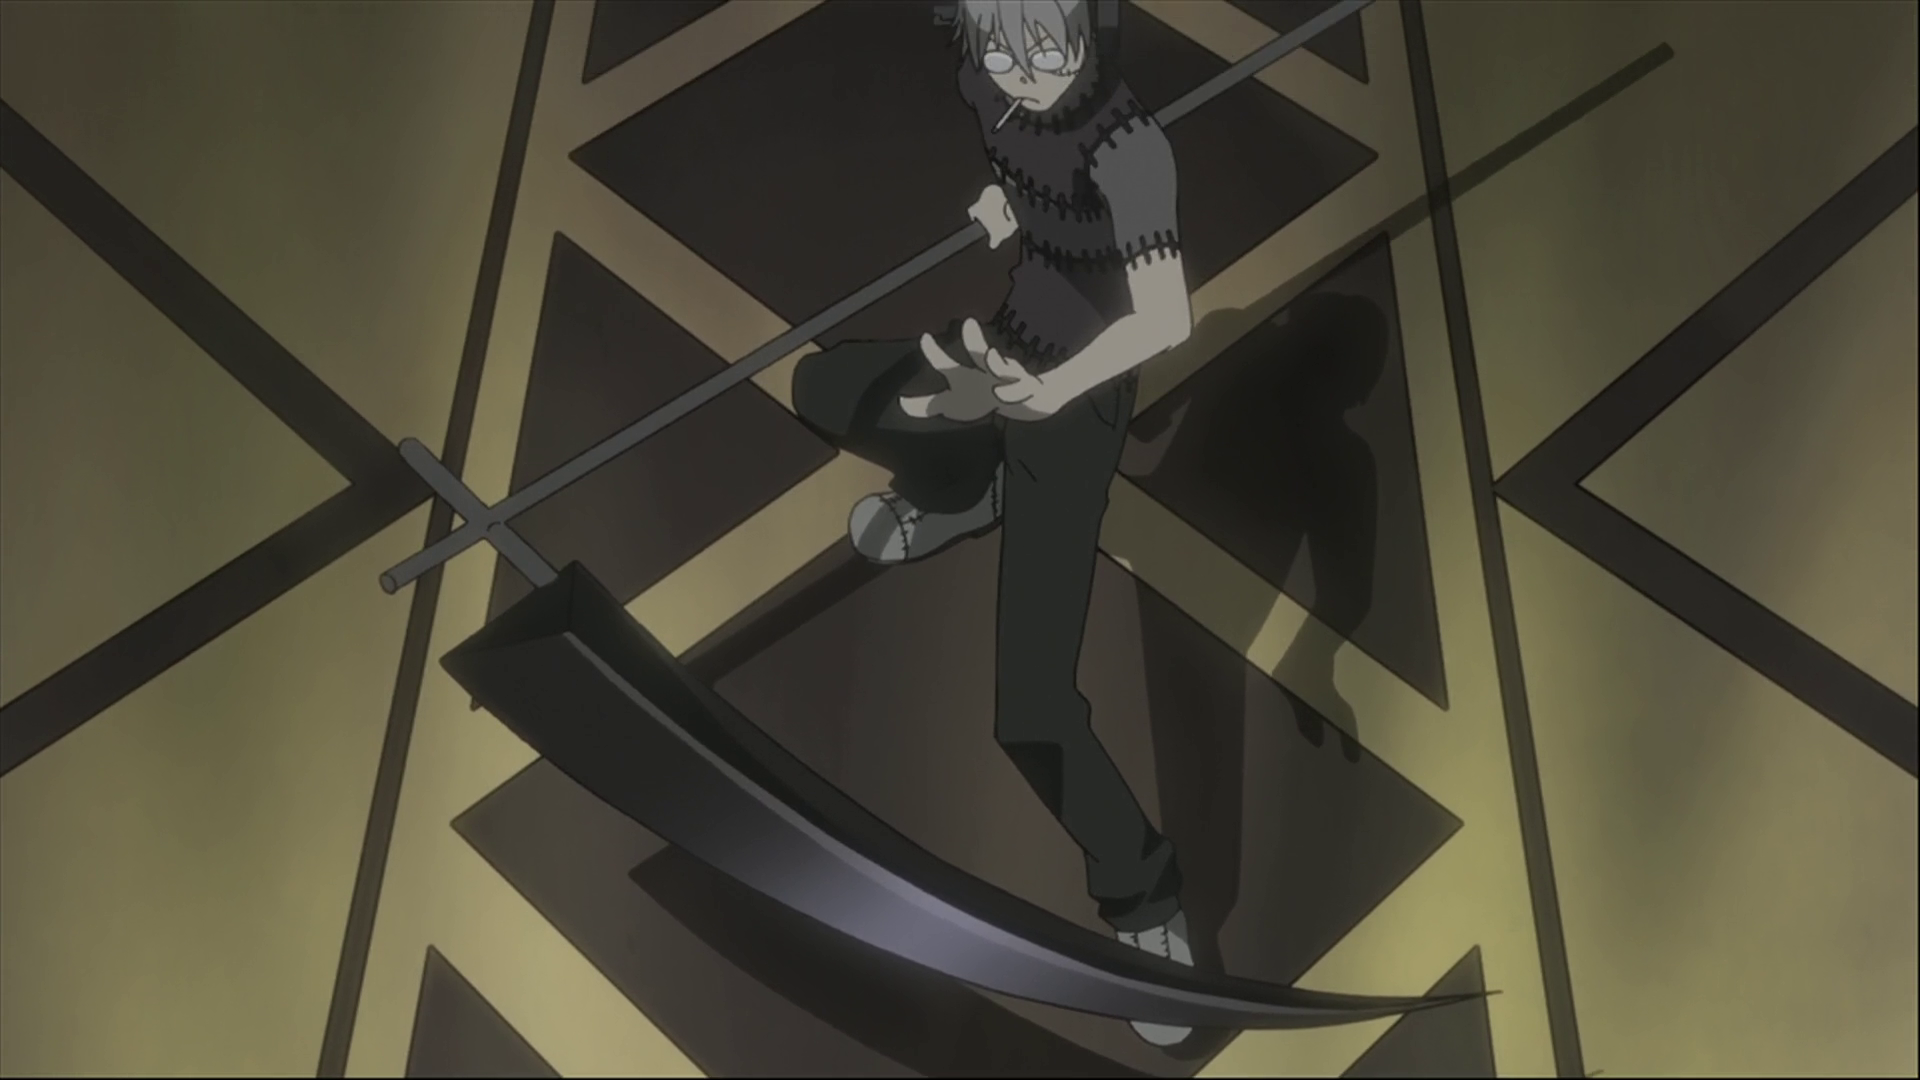 Stein S Fighting Style Soul Eater Wiki Fandom Powered By Wikia